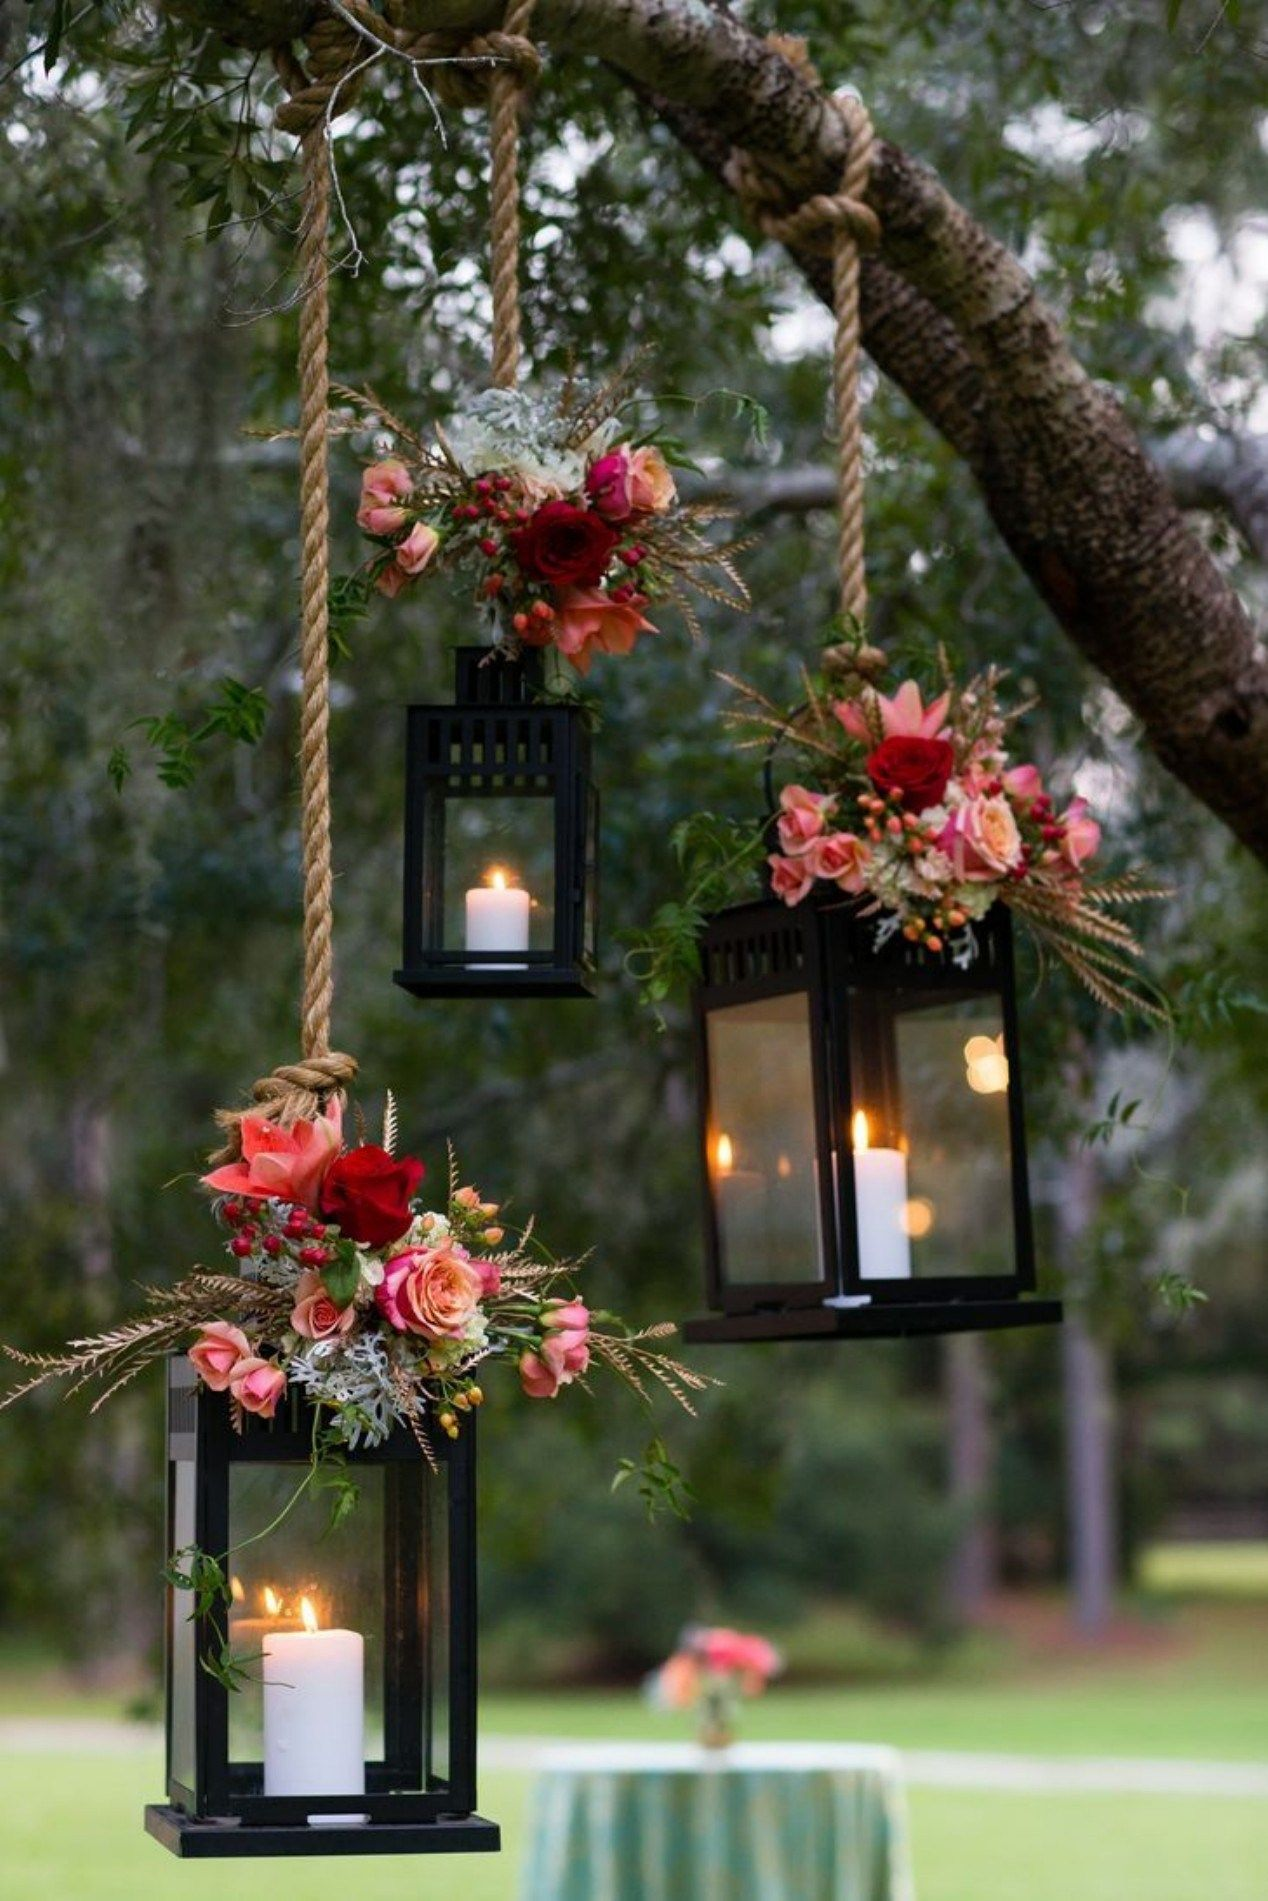 Hanging lights wedding decor  Great outdoor wedding decoration ideas   Dream Wedding